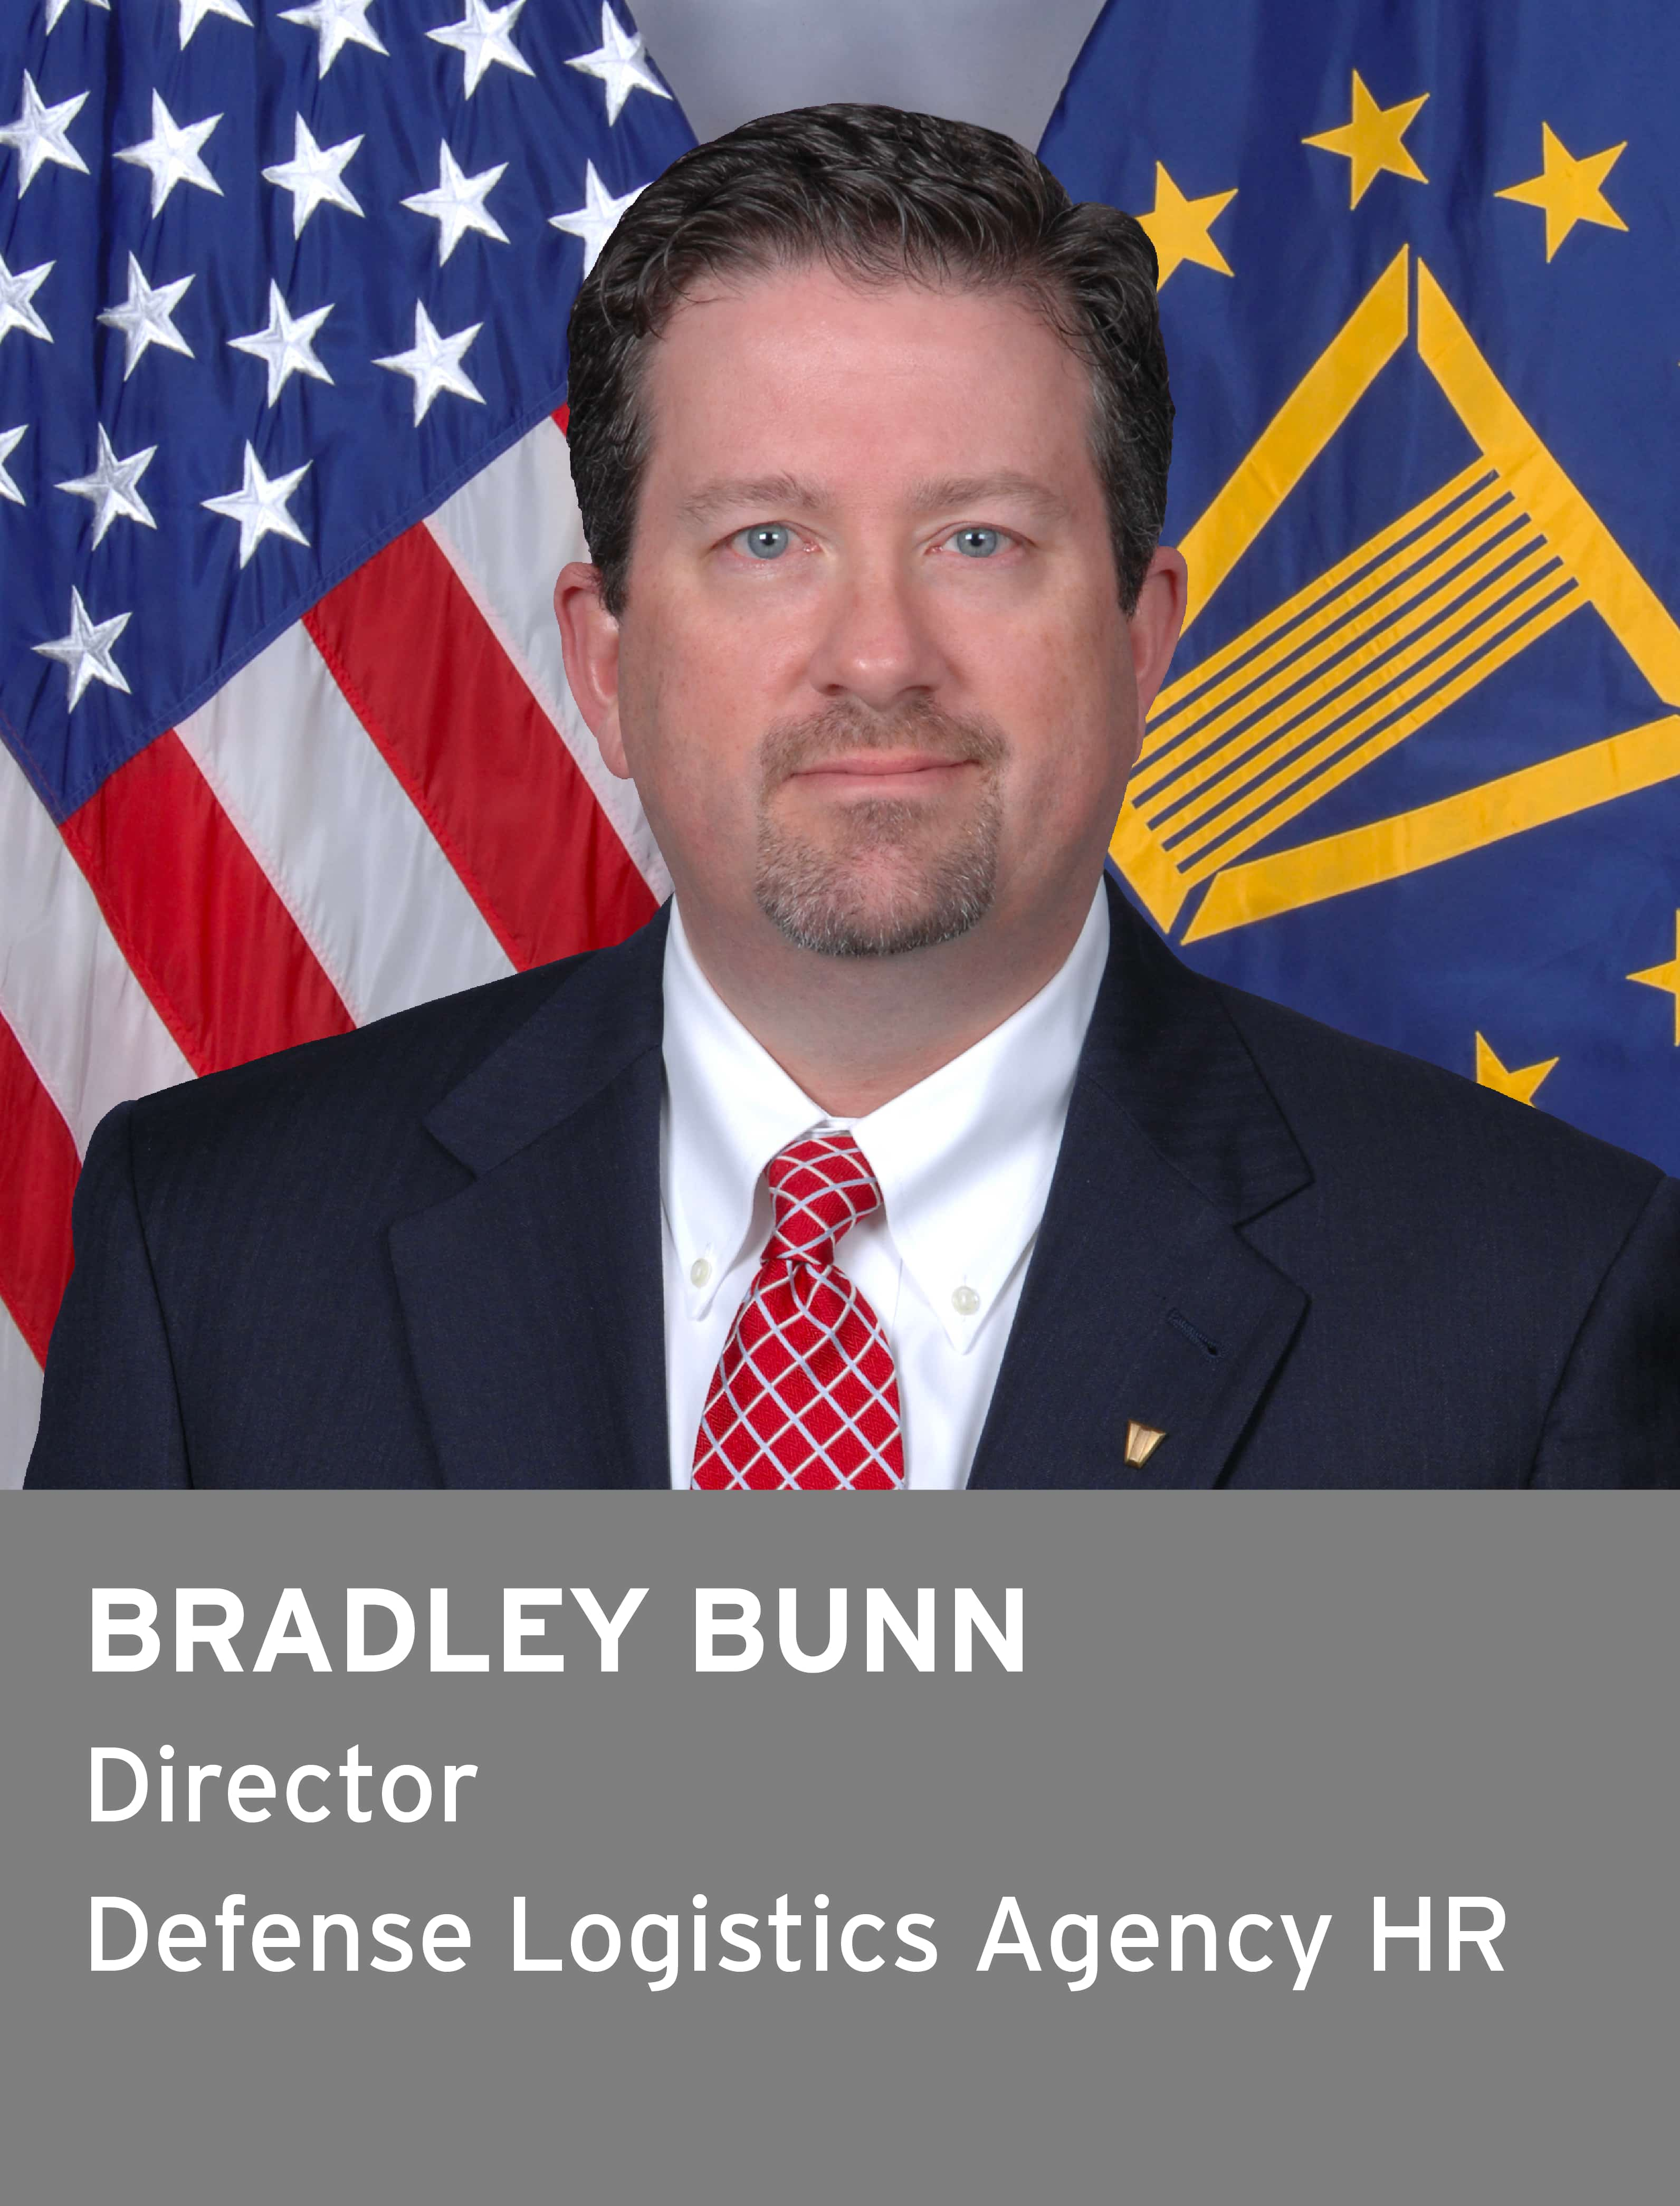 Bradley Bunn. Director of Defense Logistics Agency HR